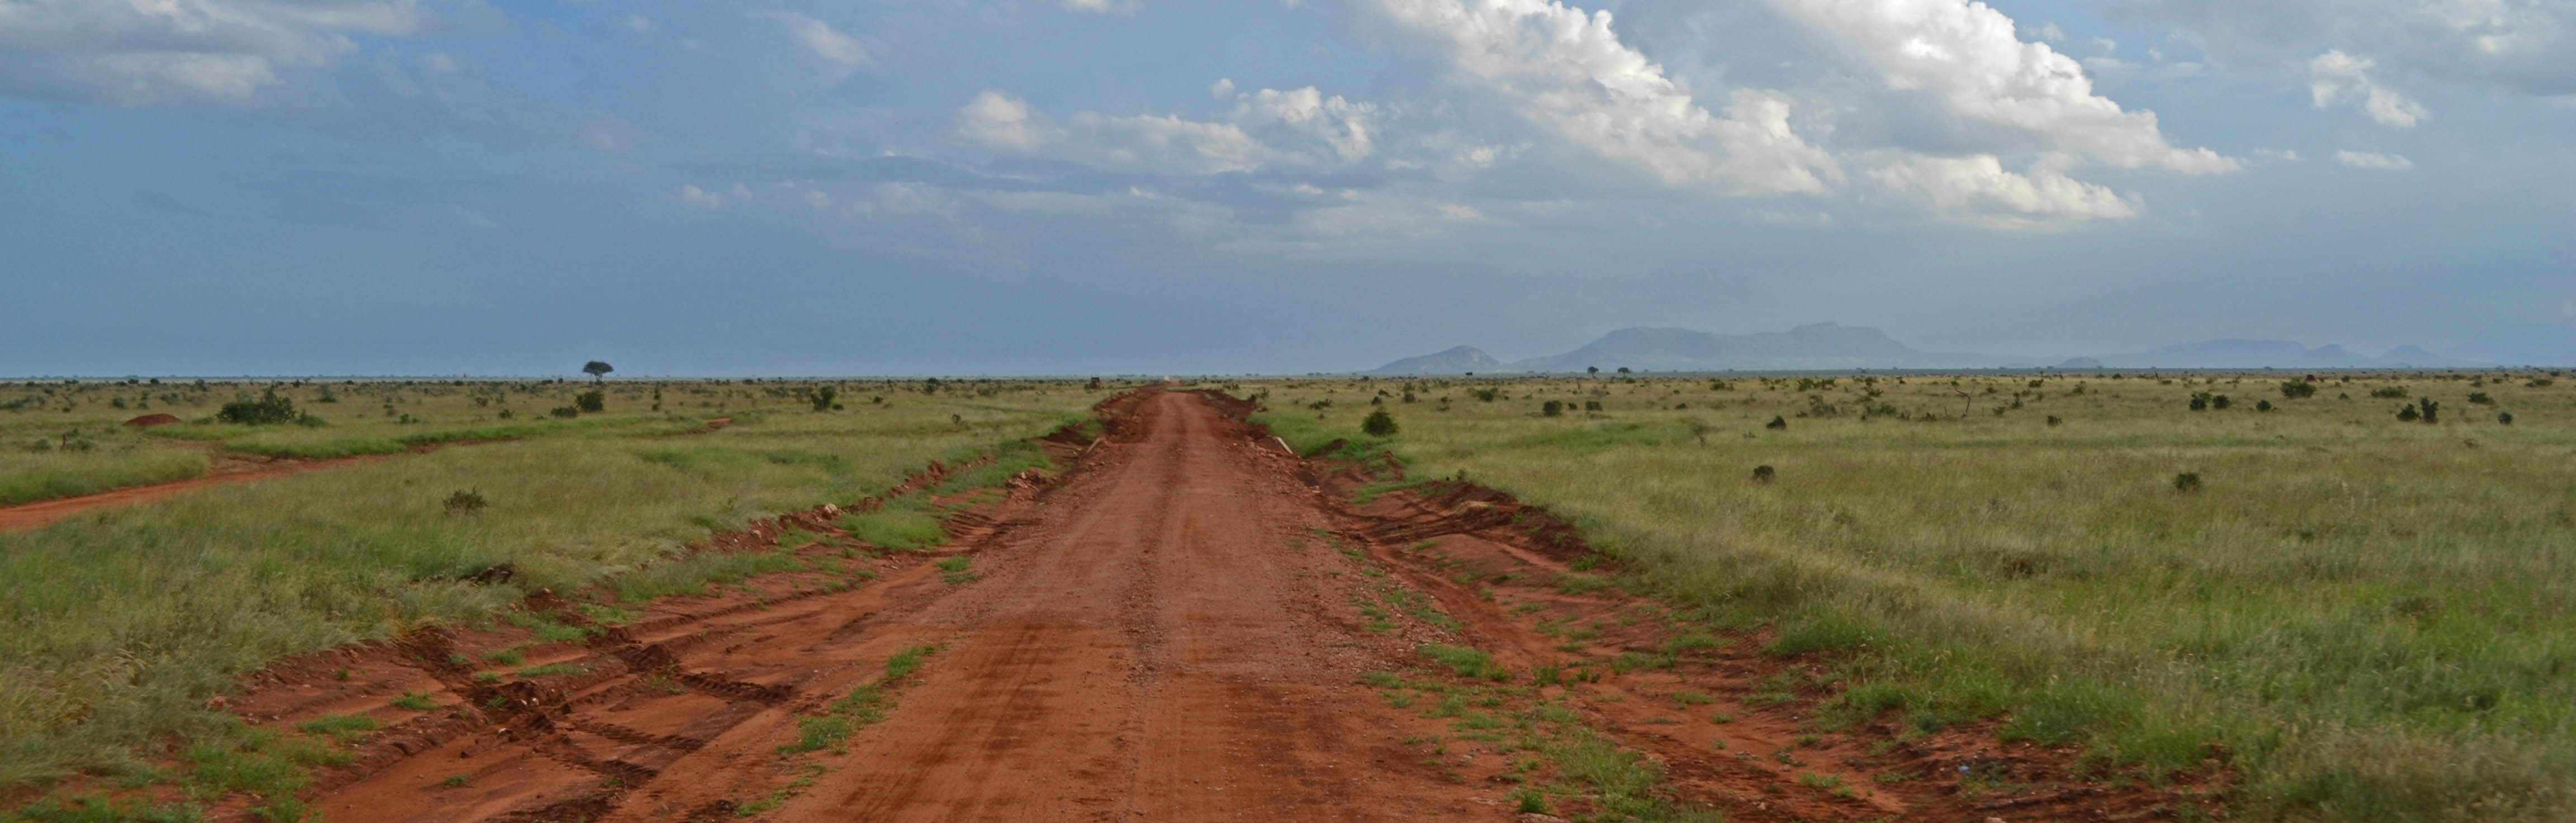 Red road, Tsavo East | Wikimedia